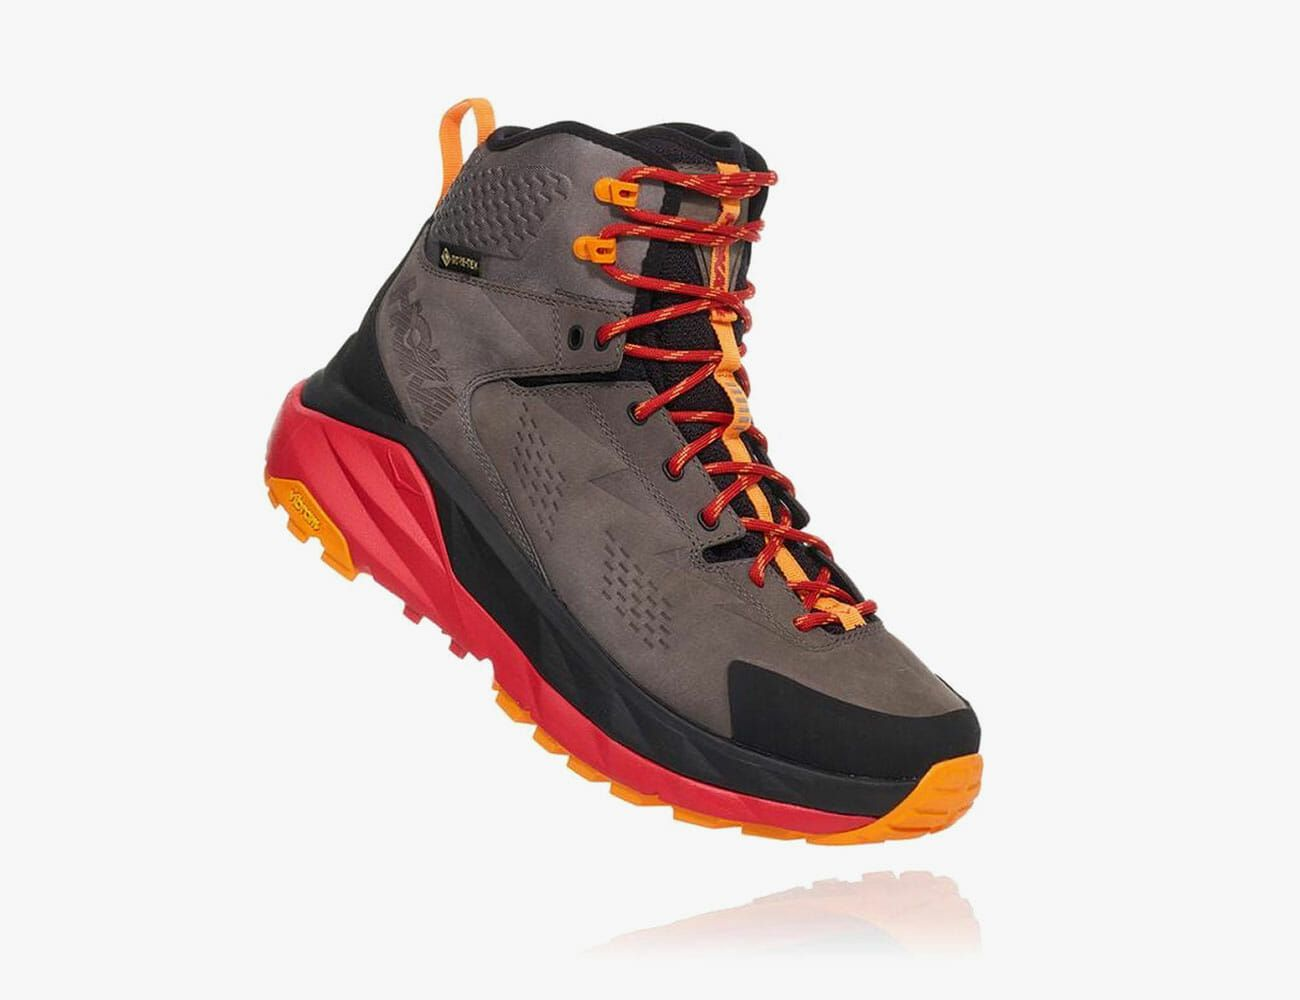 The Best Hiking Boots of 2020 • Gear Patrol